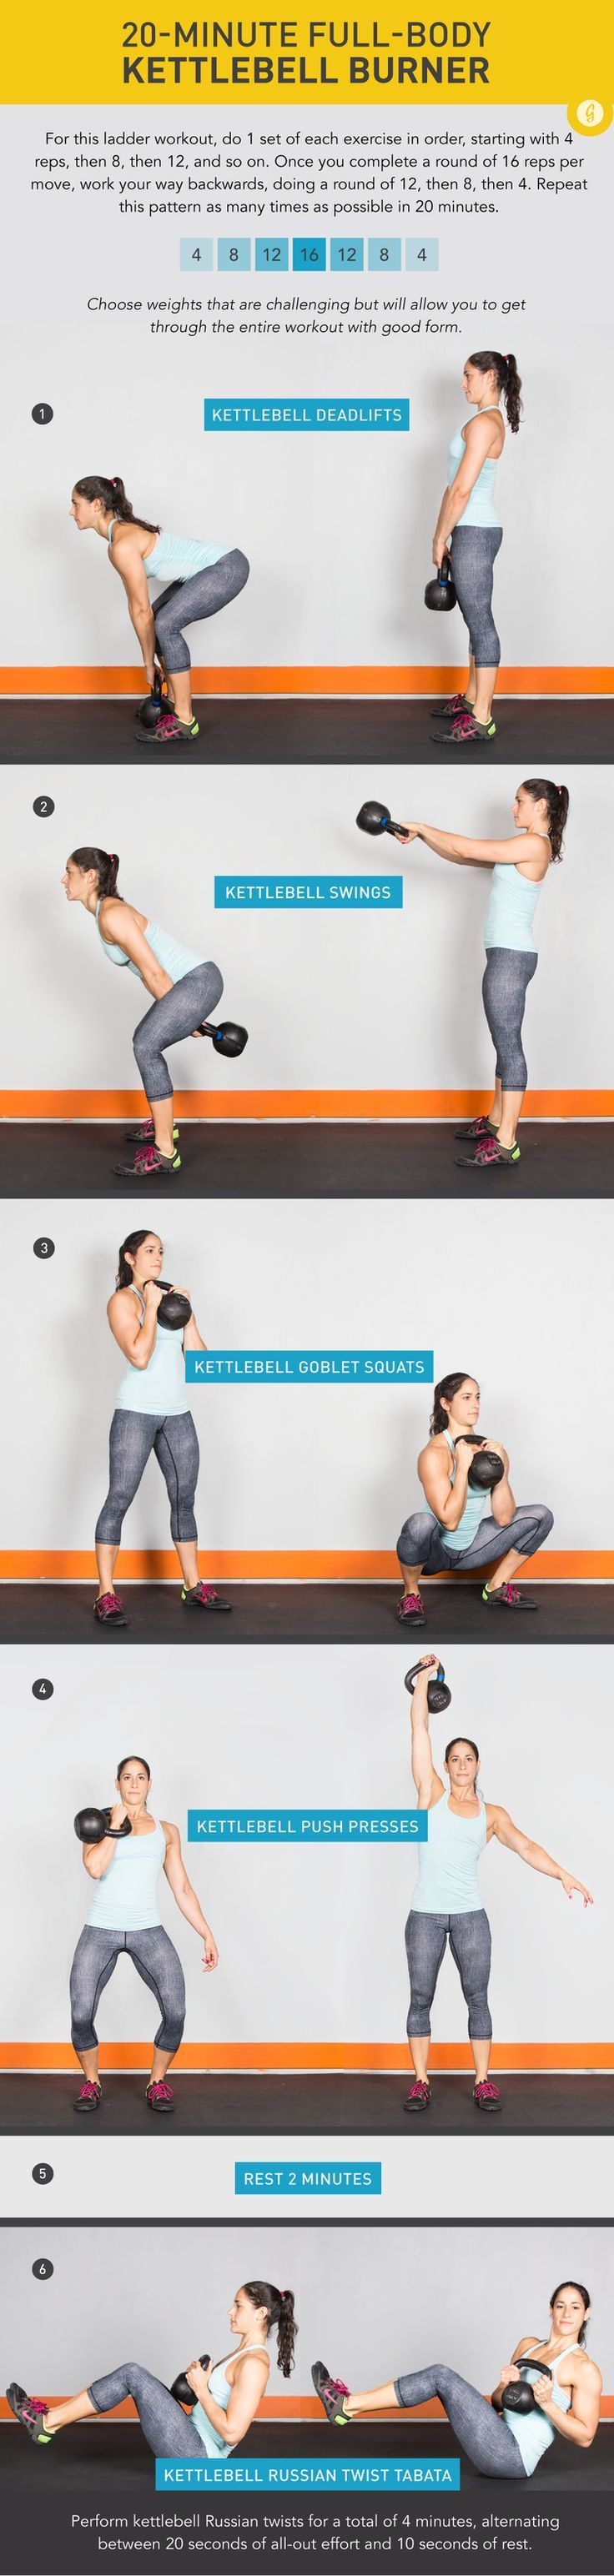 20 Minute Full-Body Kettlebell Burner — Work your entire body with these sweat-inducing kettlebell moves. #workout #fitness #kettlebell #greatist